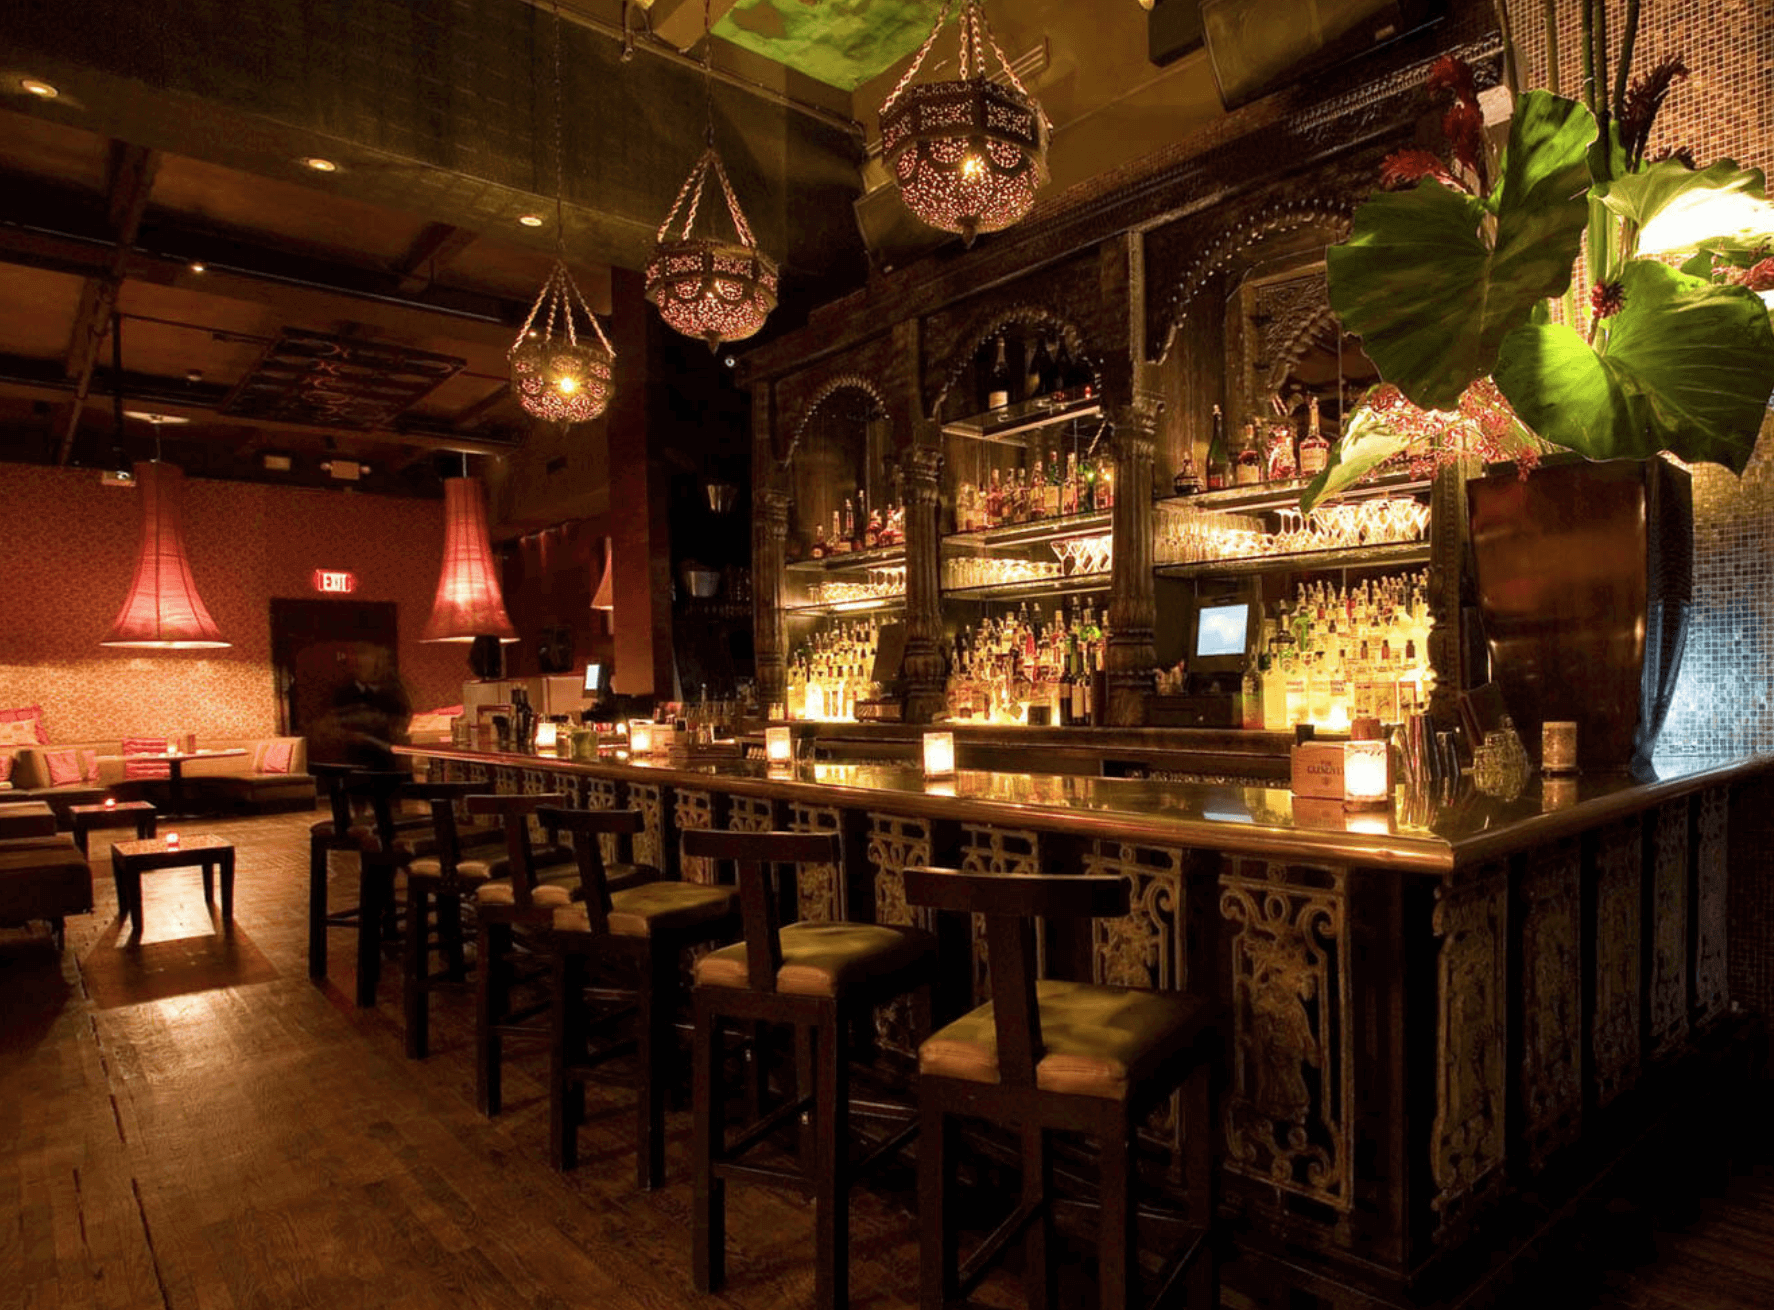 Curiosities Our Bucket Lists 7 Best NYC Social Dance Venues Taj Bar